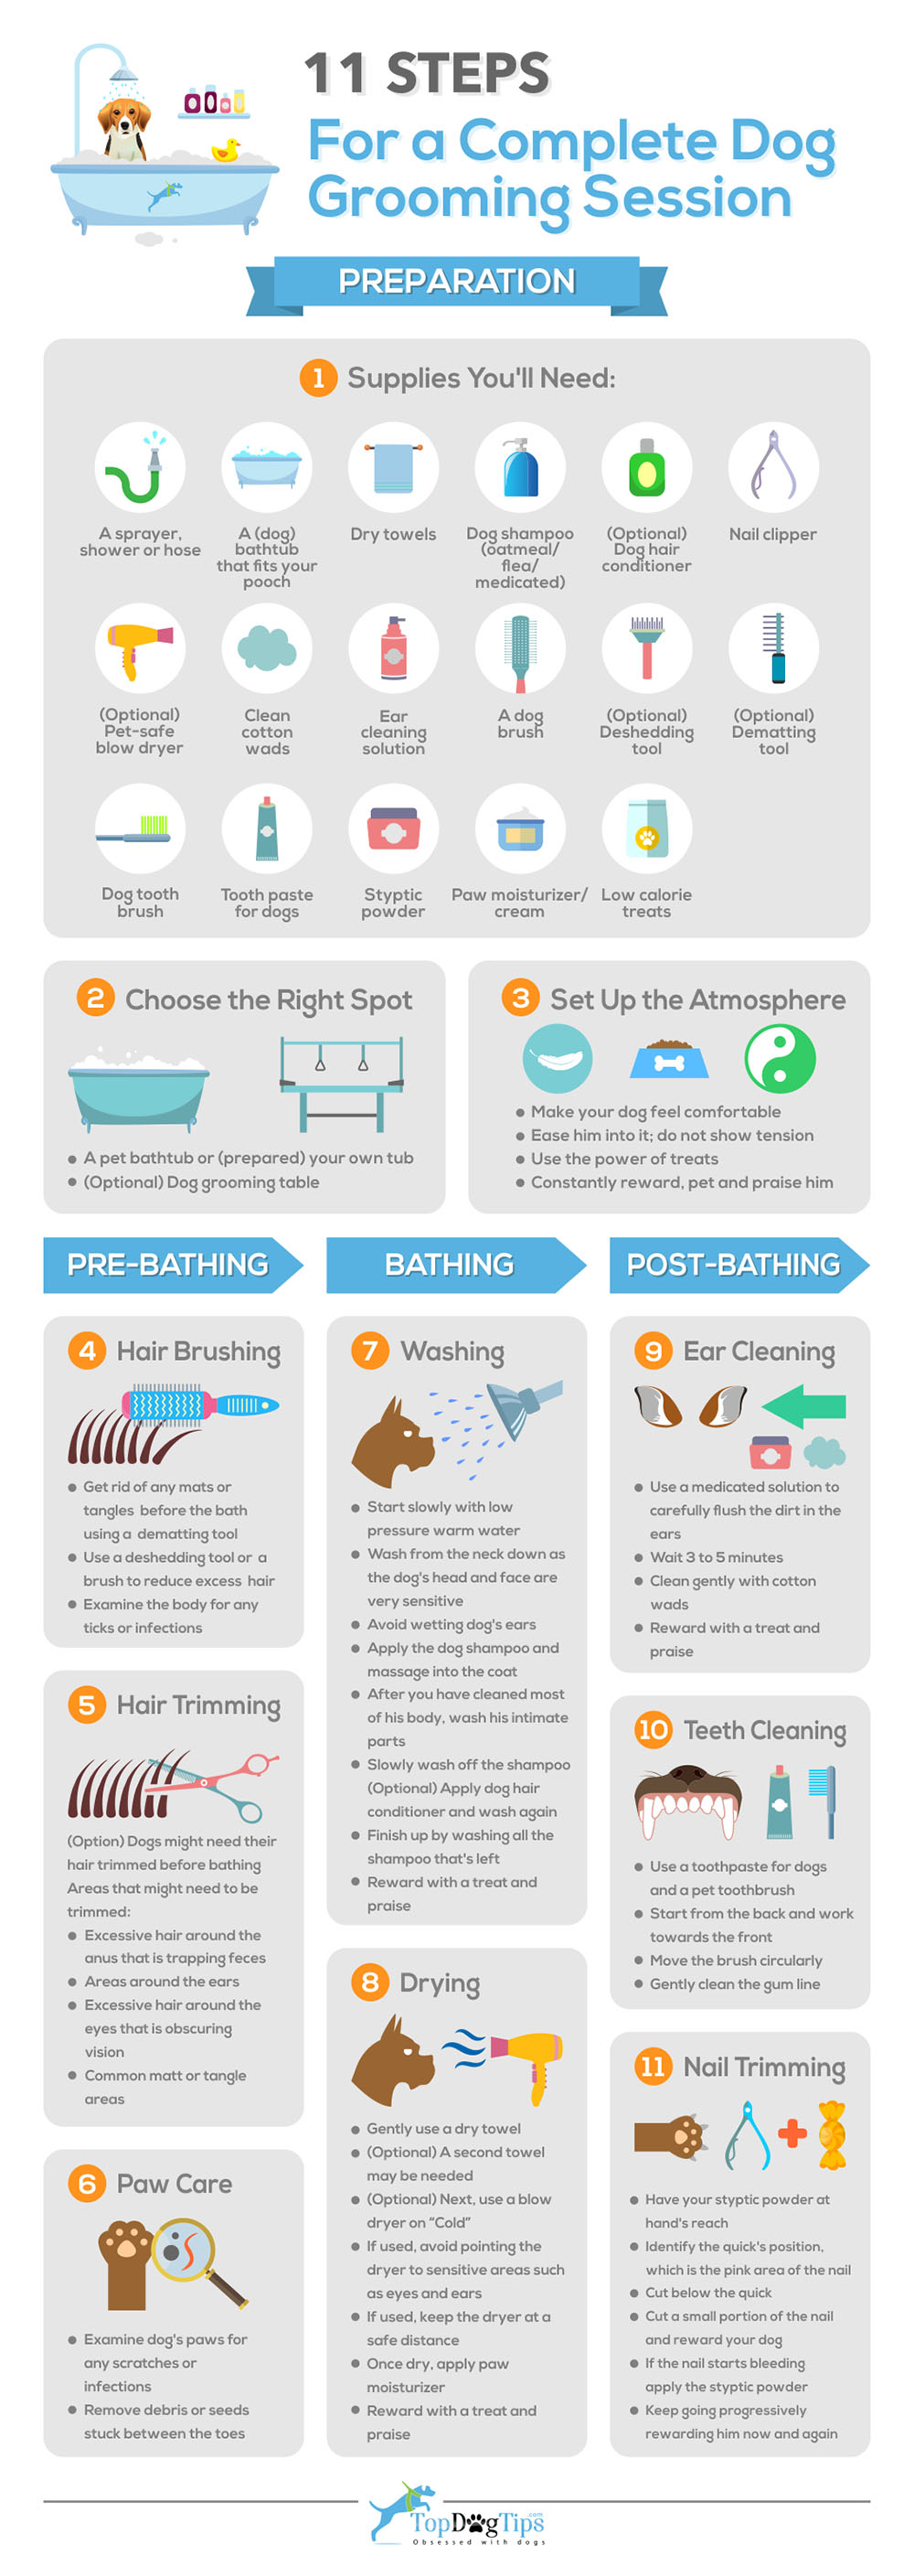 11 Quick Steps For A Complete Dog Grooming Session